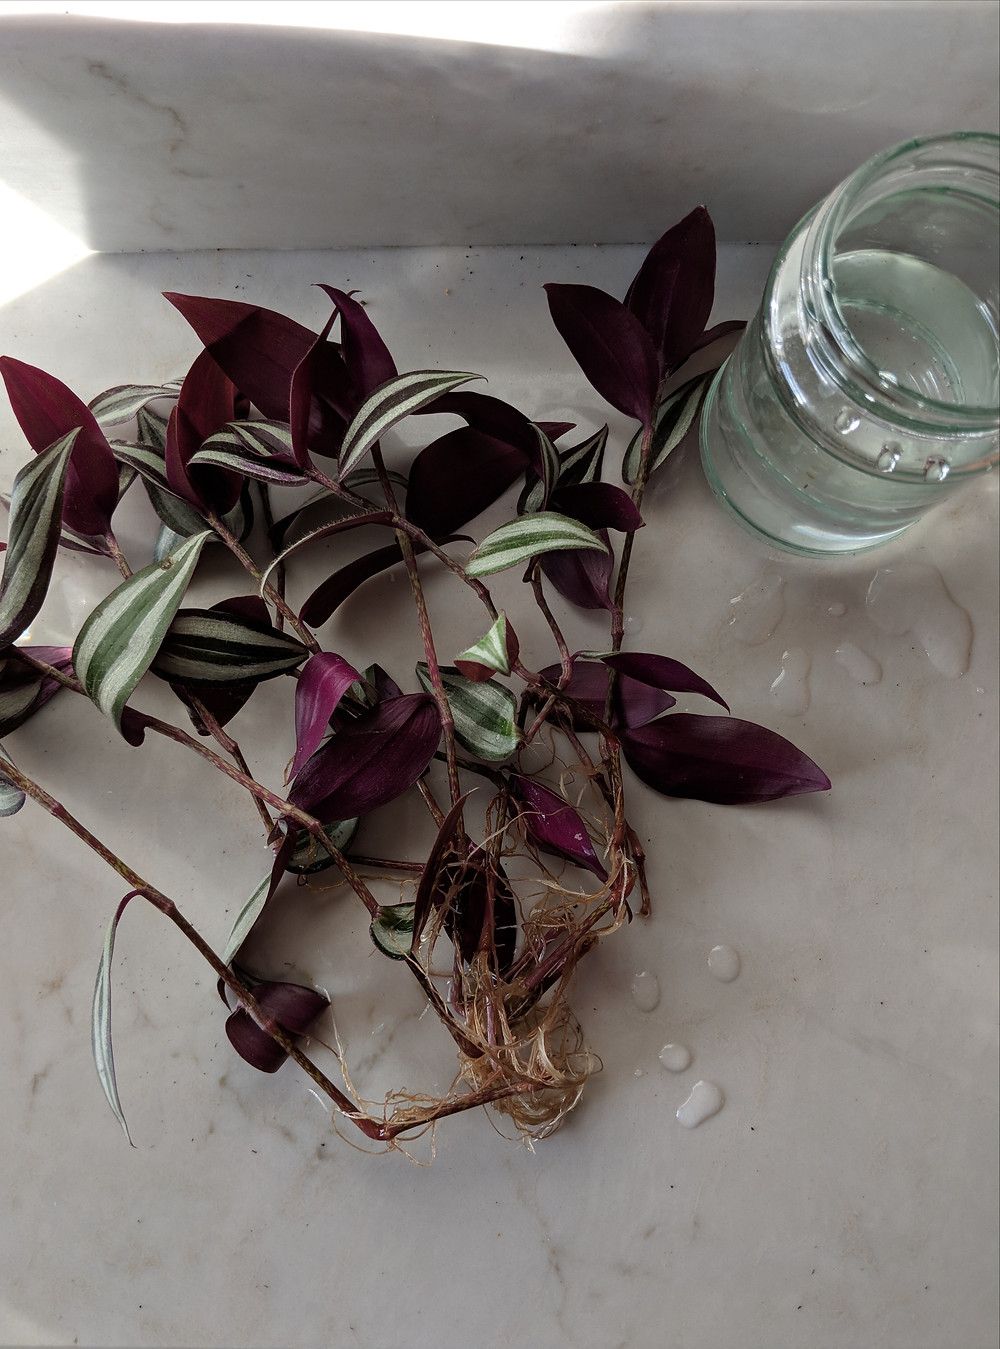 Several tradescantia plant cuttings sit on a kitchen counter next to a jar of water. They have long roots and there are drips on water on the counter surface.